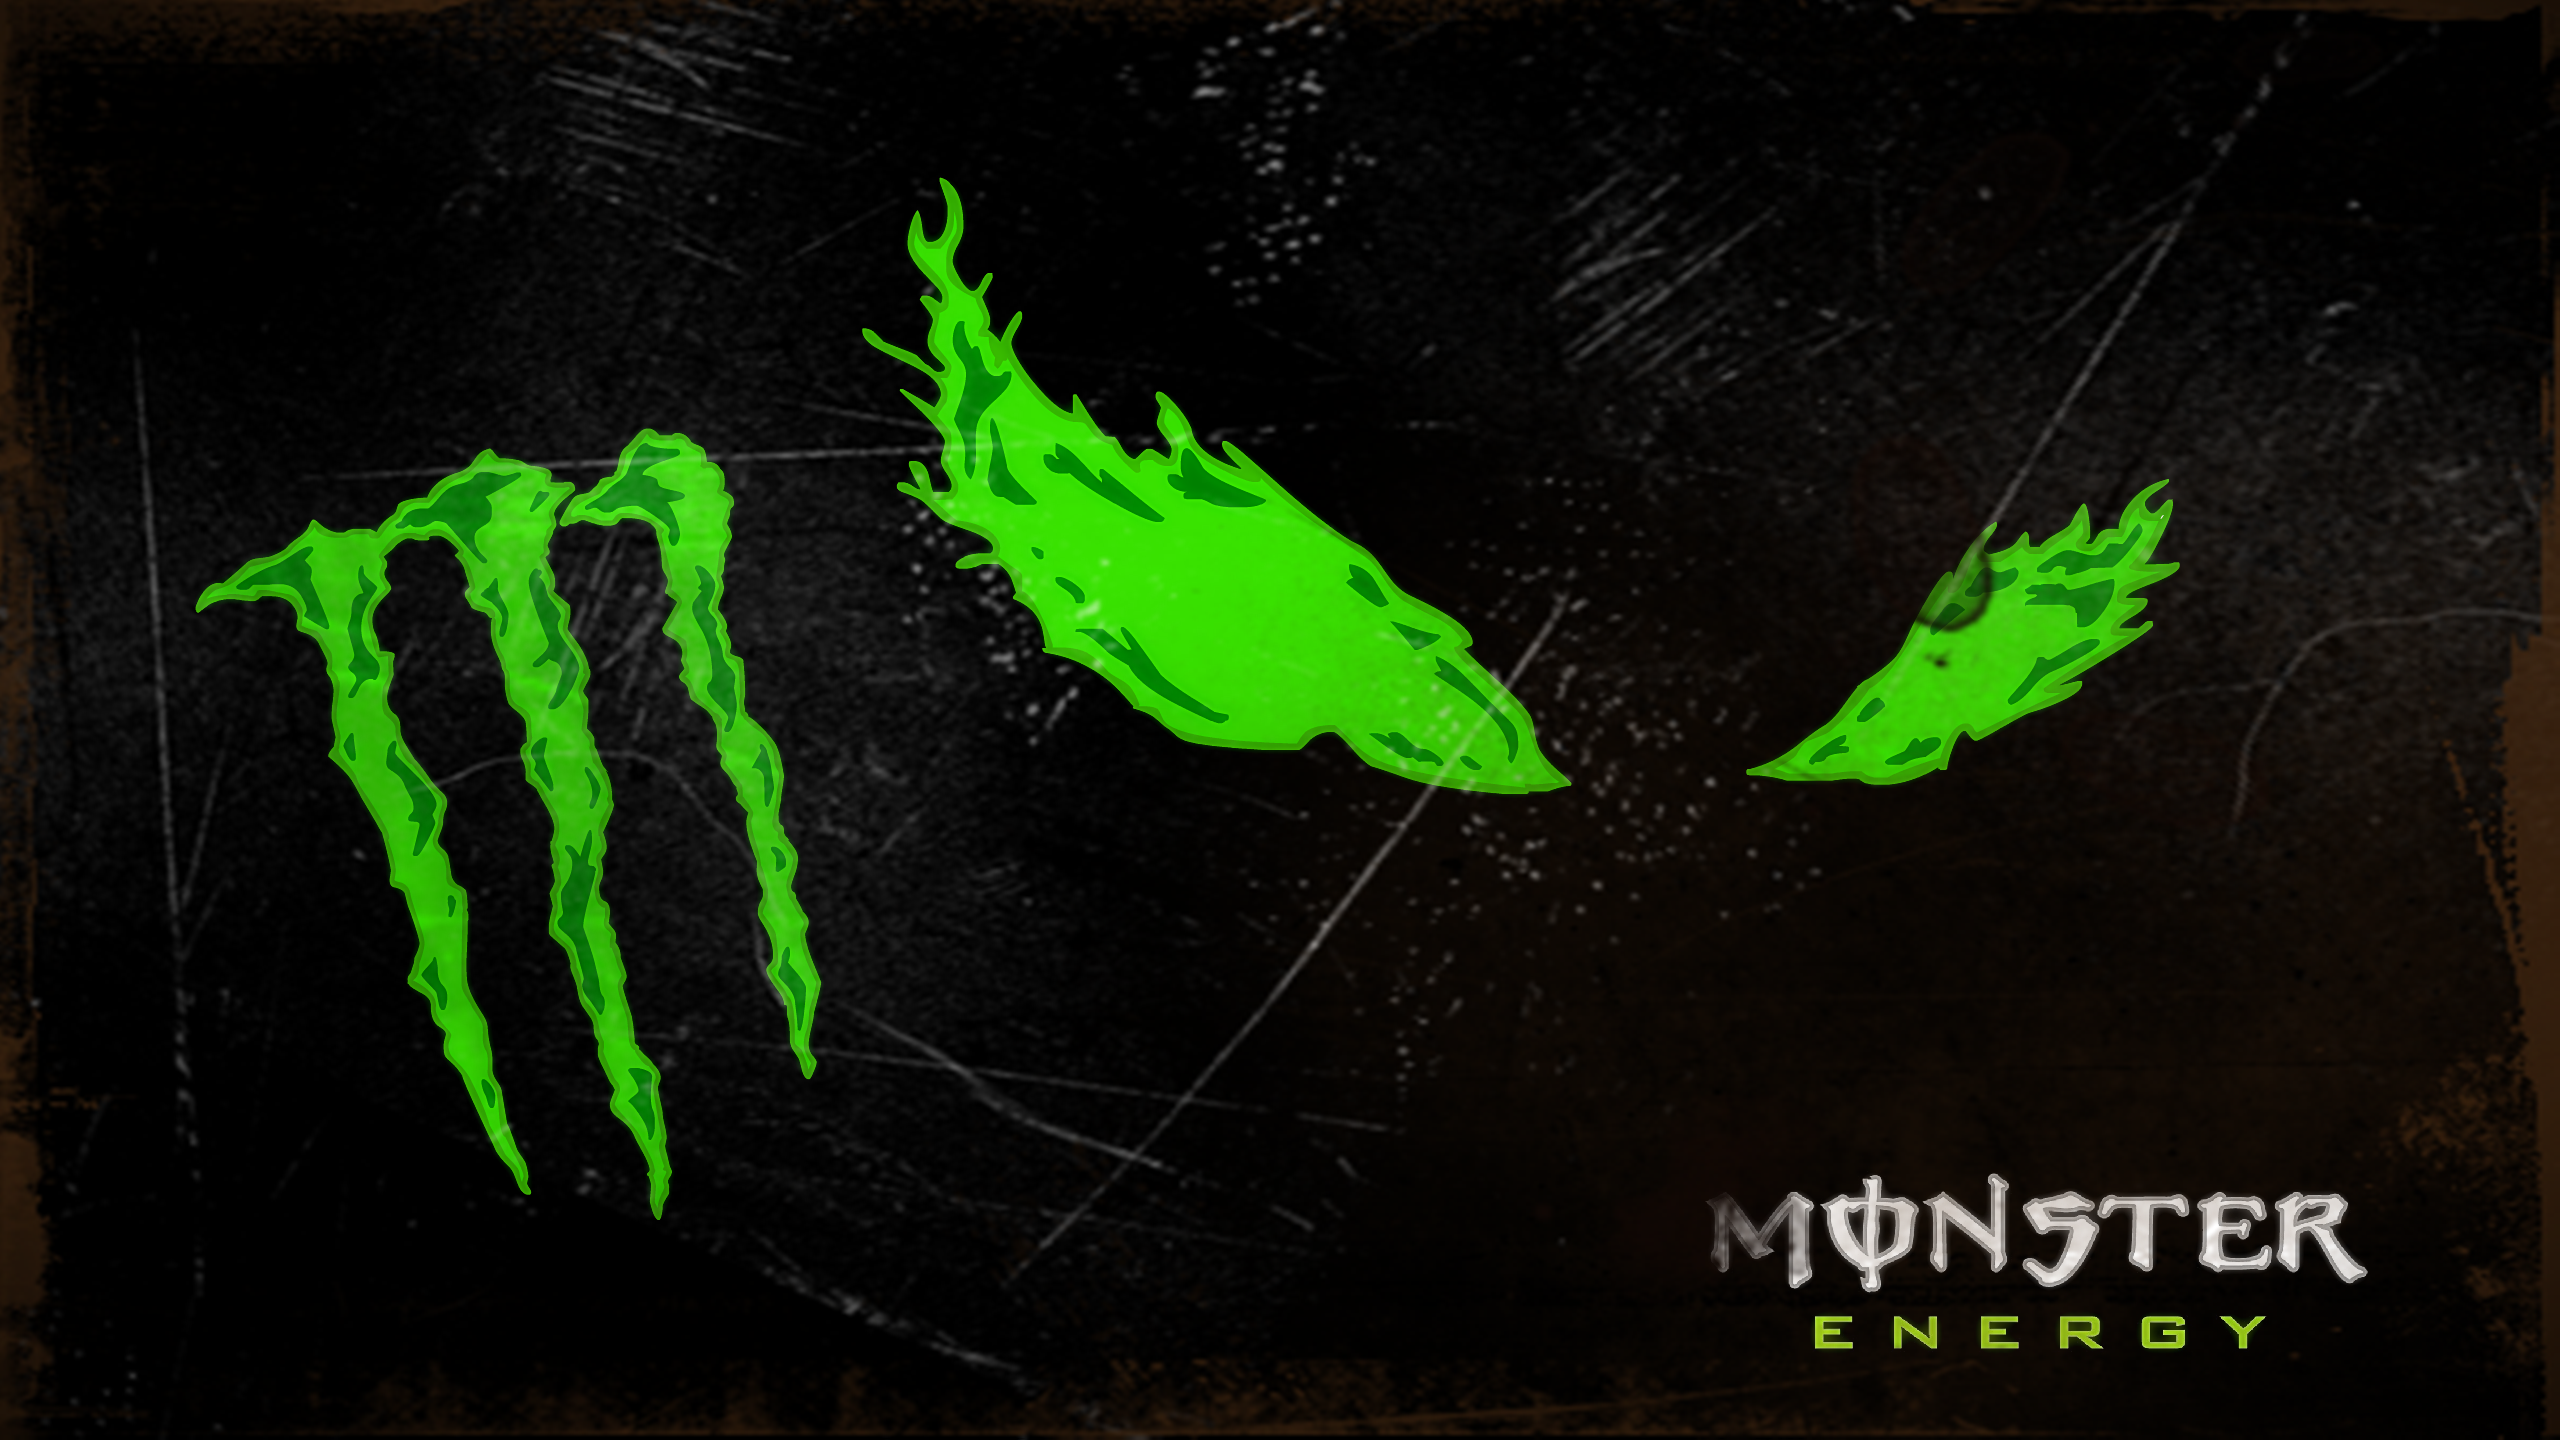 Monster Energy Background